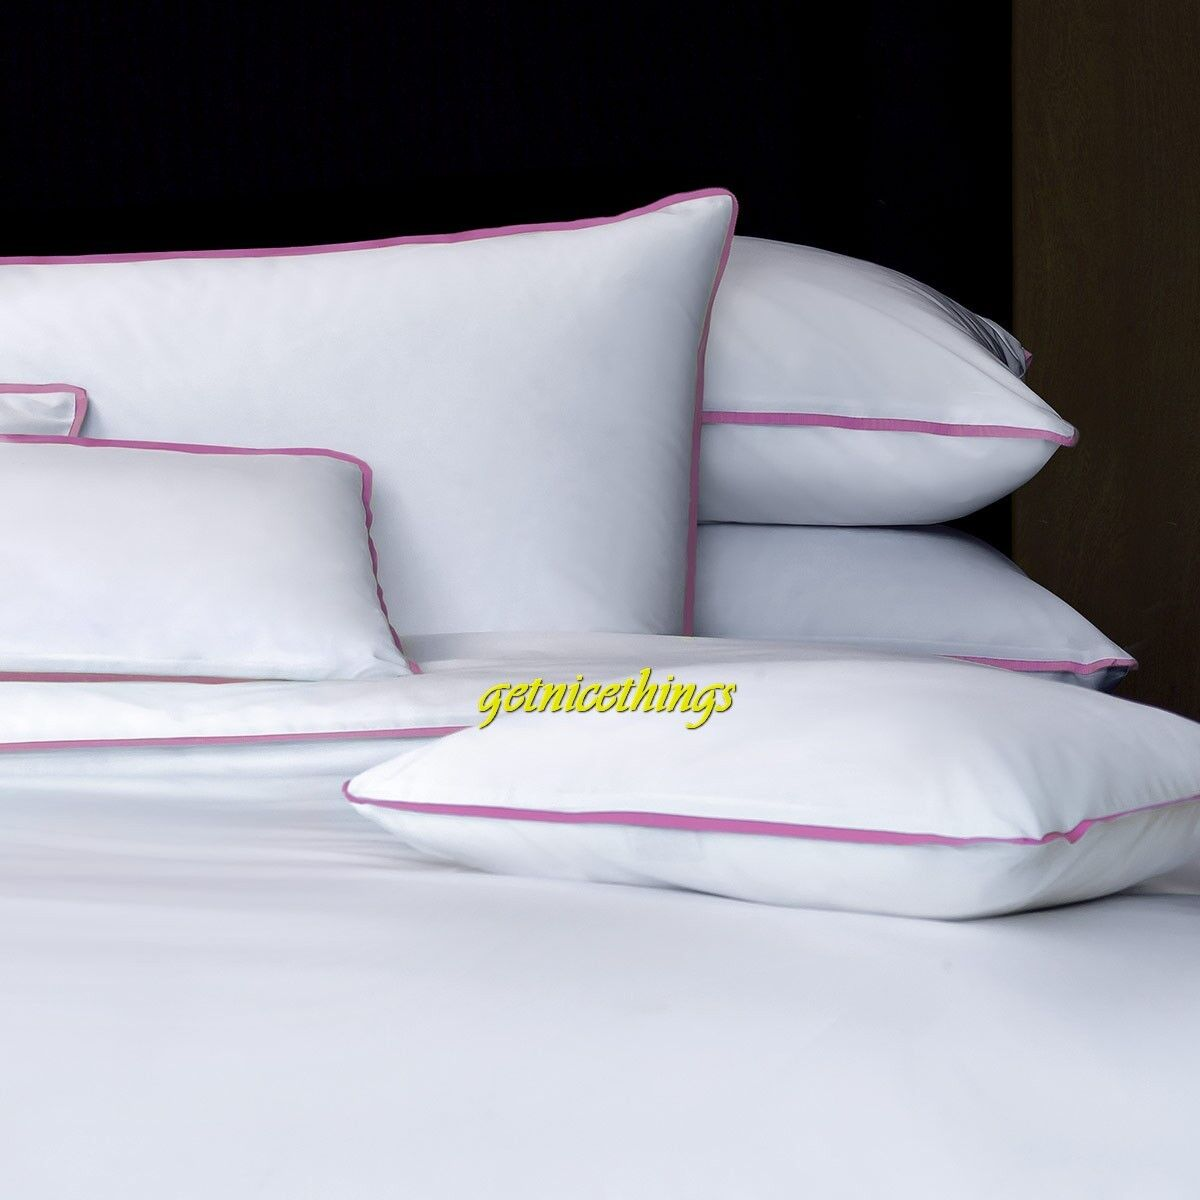 Yves Delorme Amity All White King Duvet Cover Pink Ribbon Trims Cotton NEW  480